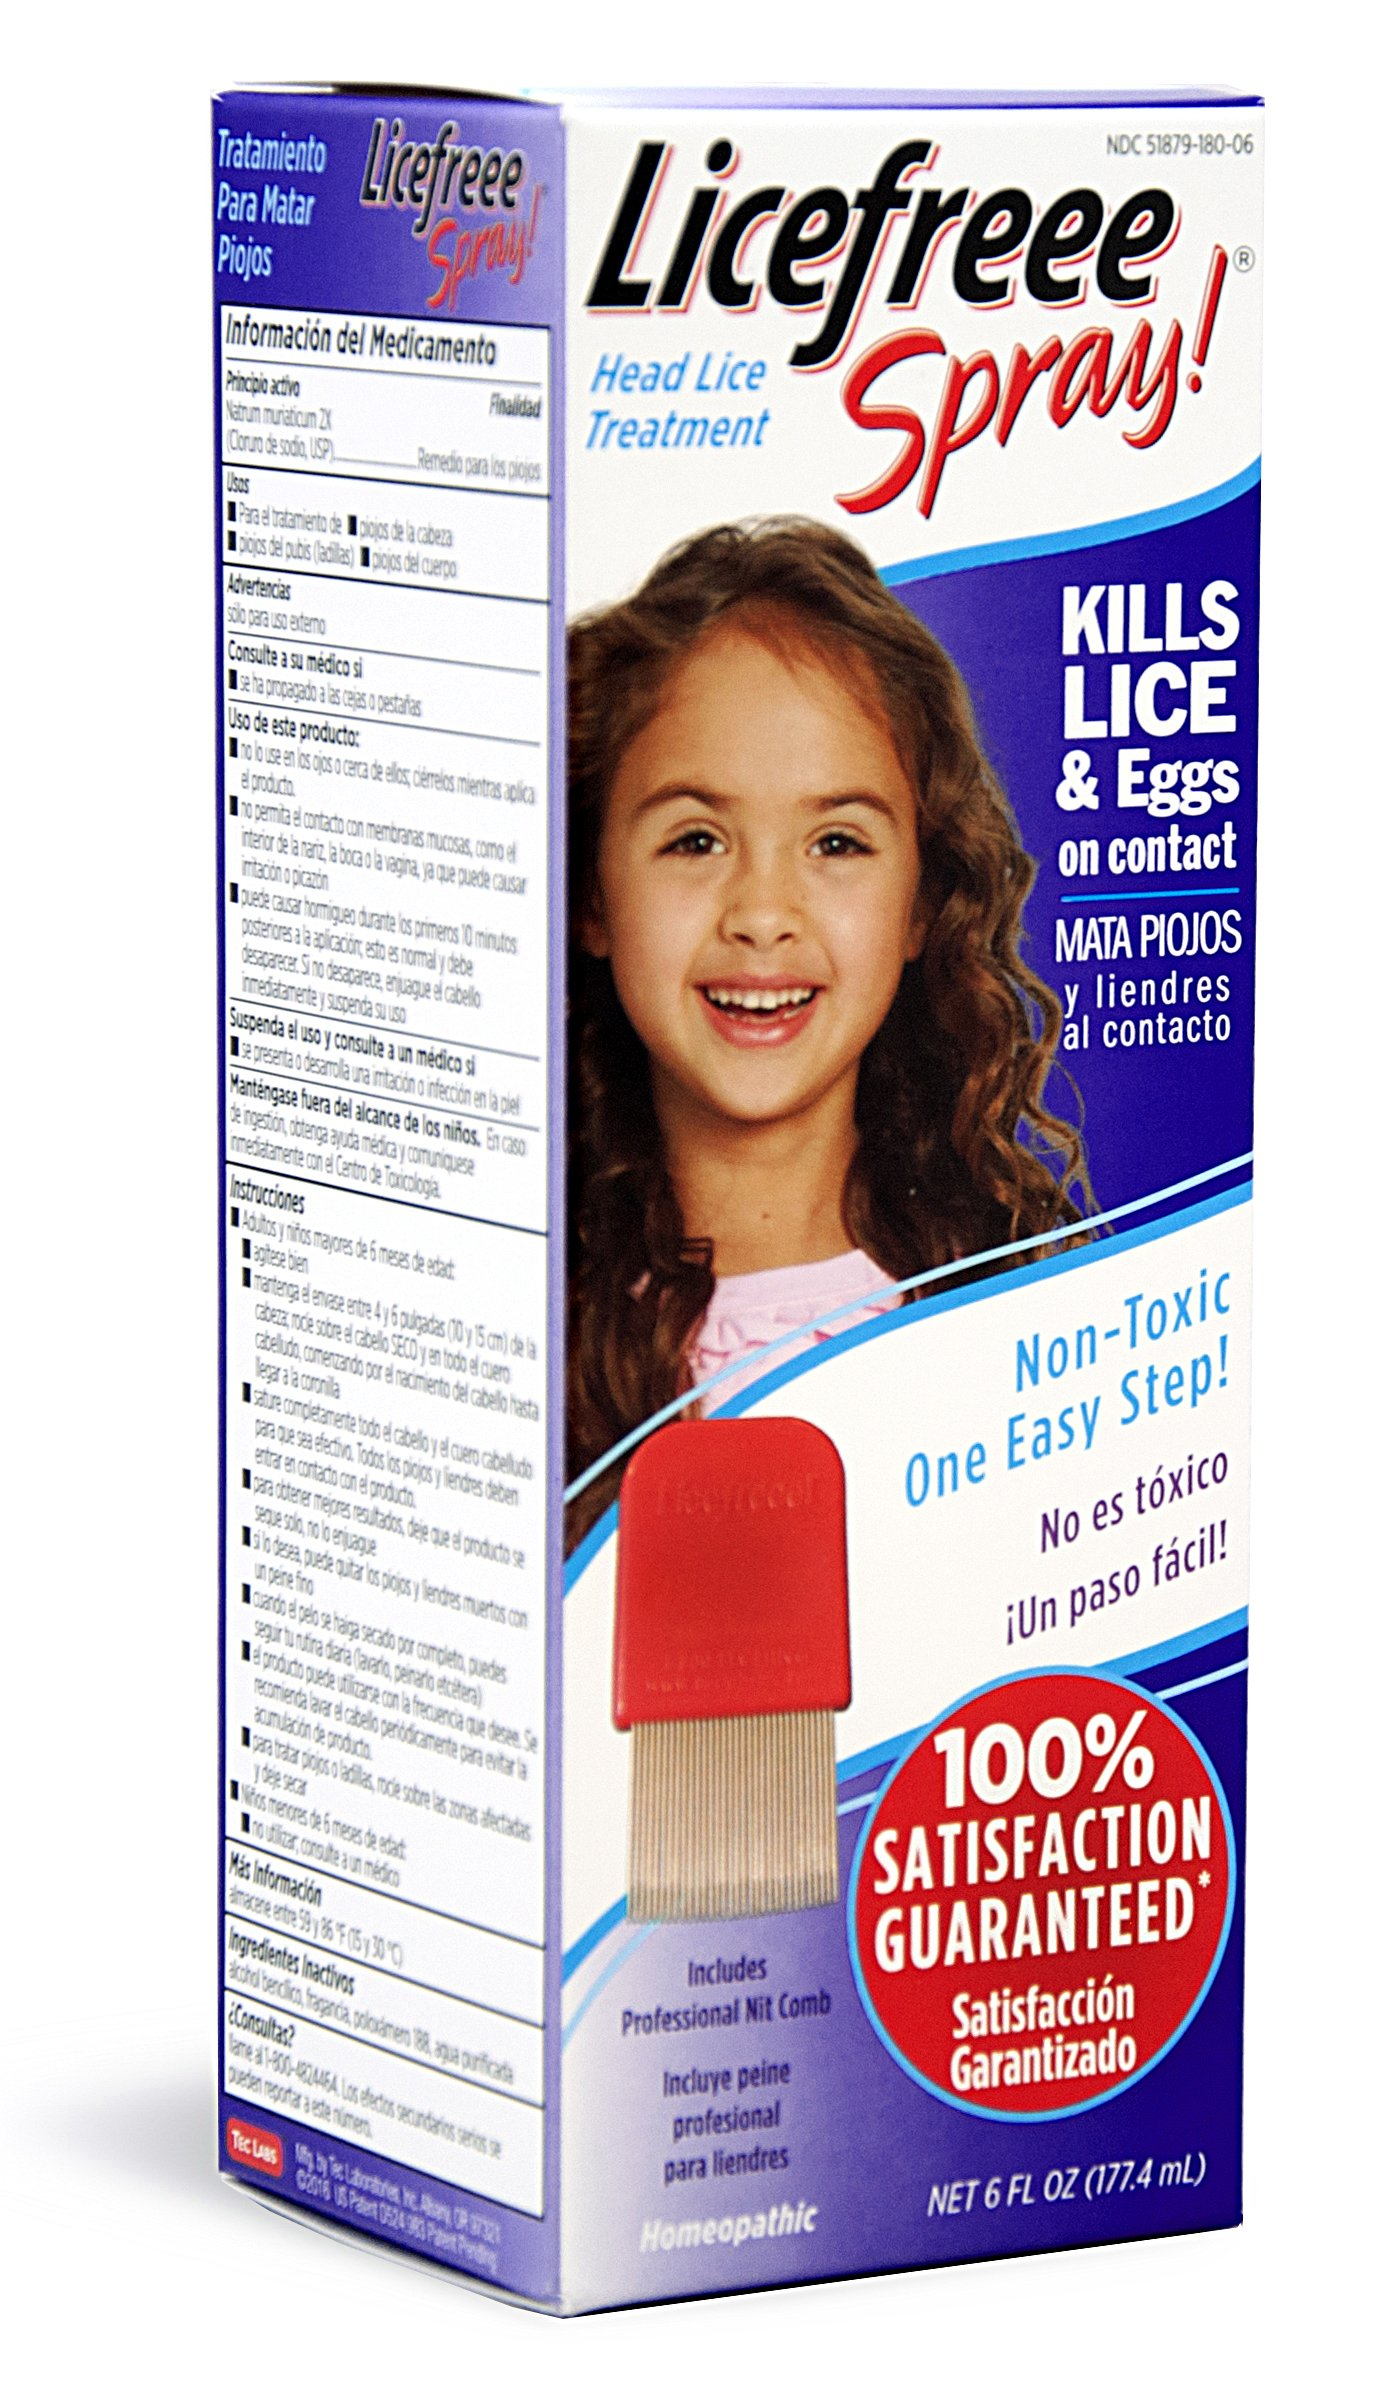 Licefreee Spray Head Lice Treatment (Kills Lice and Eggs on Contact) Includes Professional Metal Nit Comb, 6 Ounce Bottle